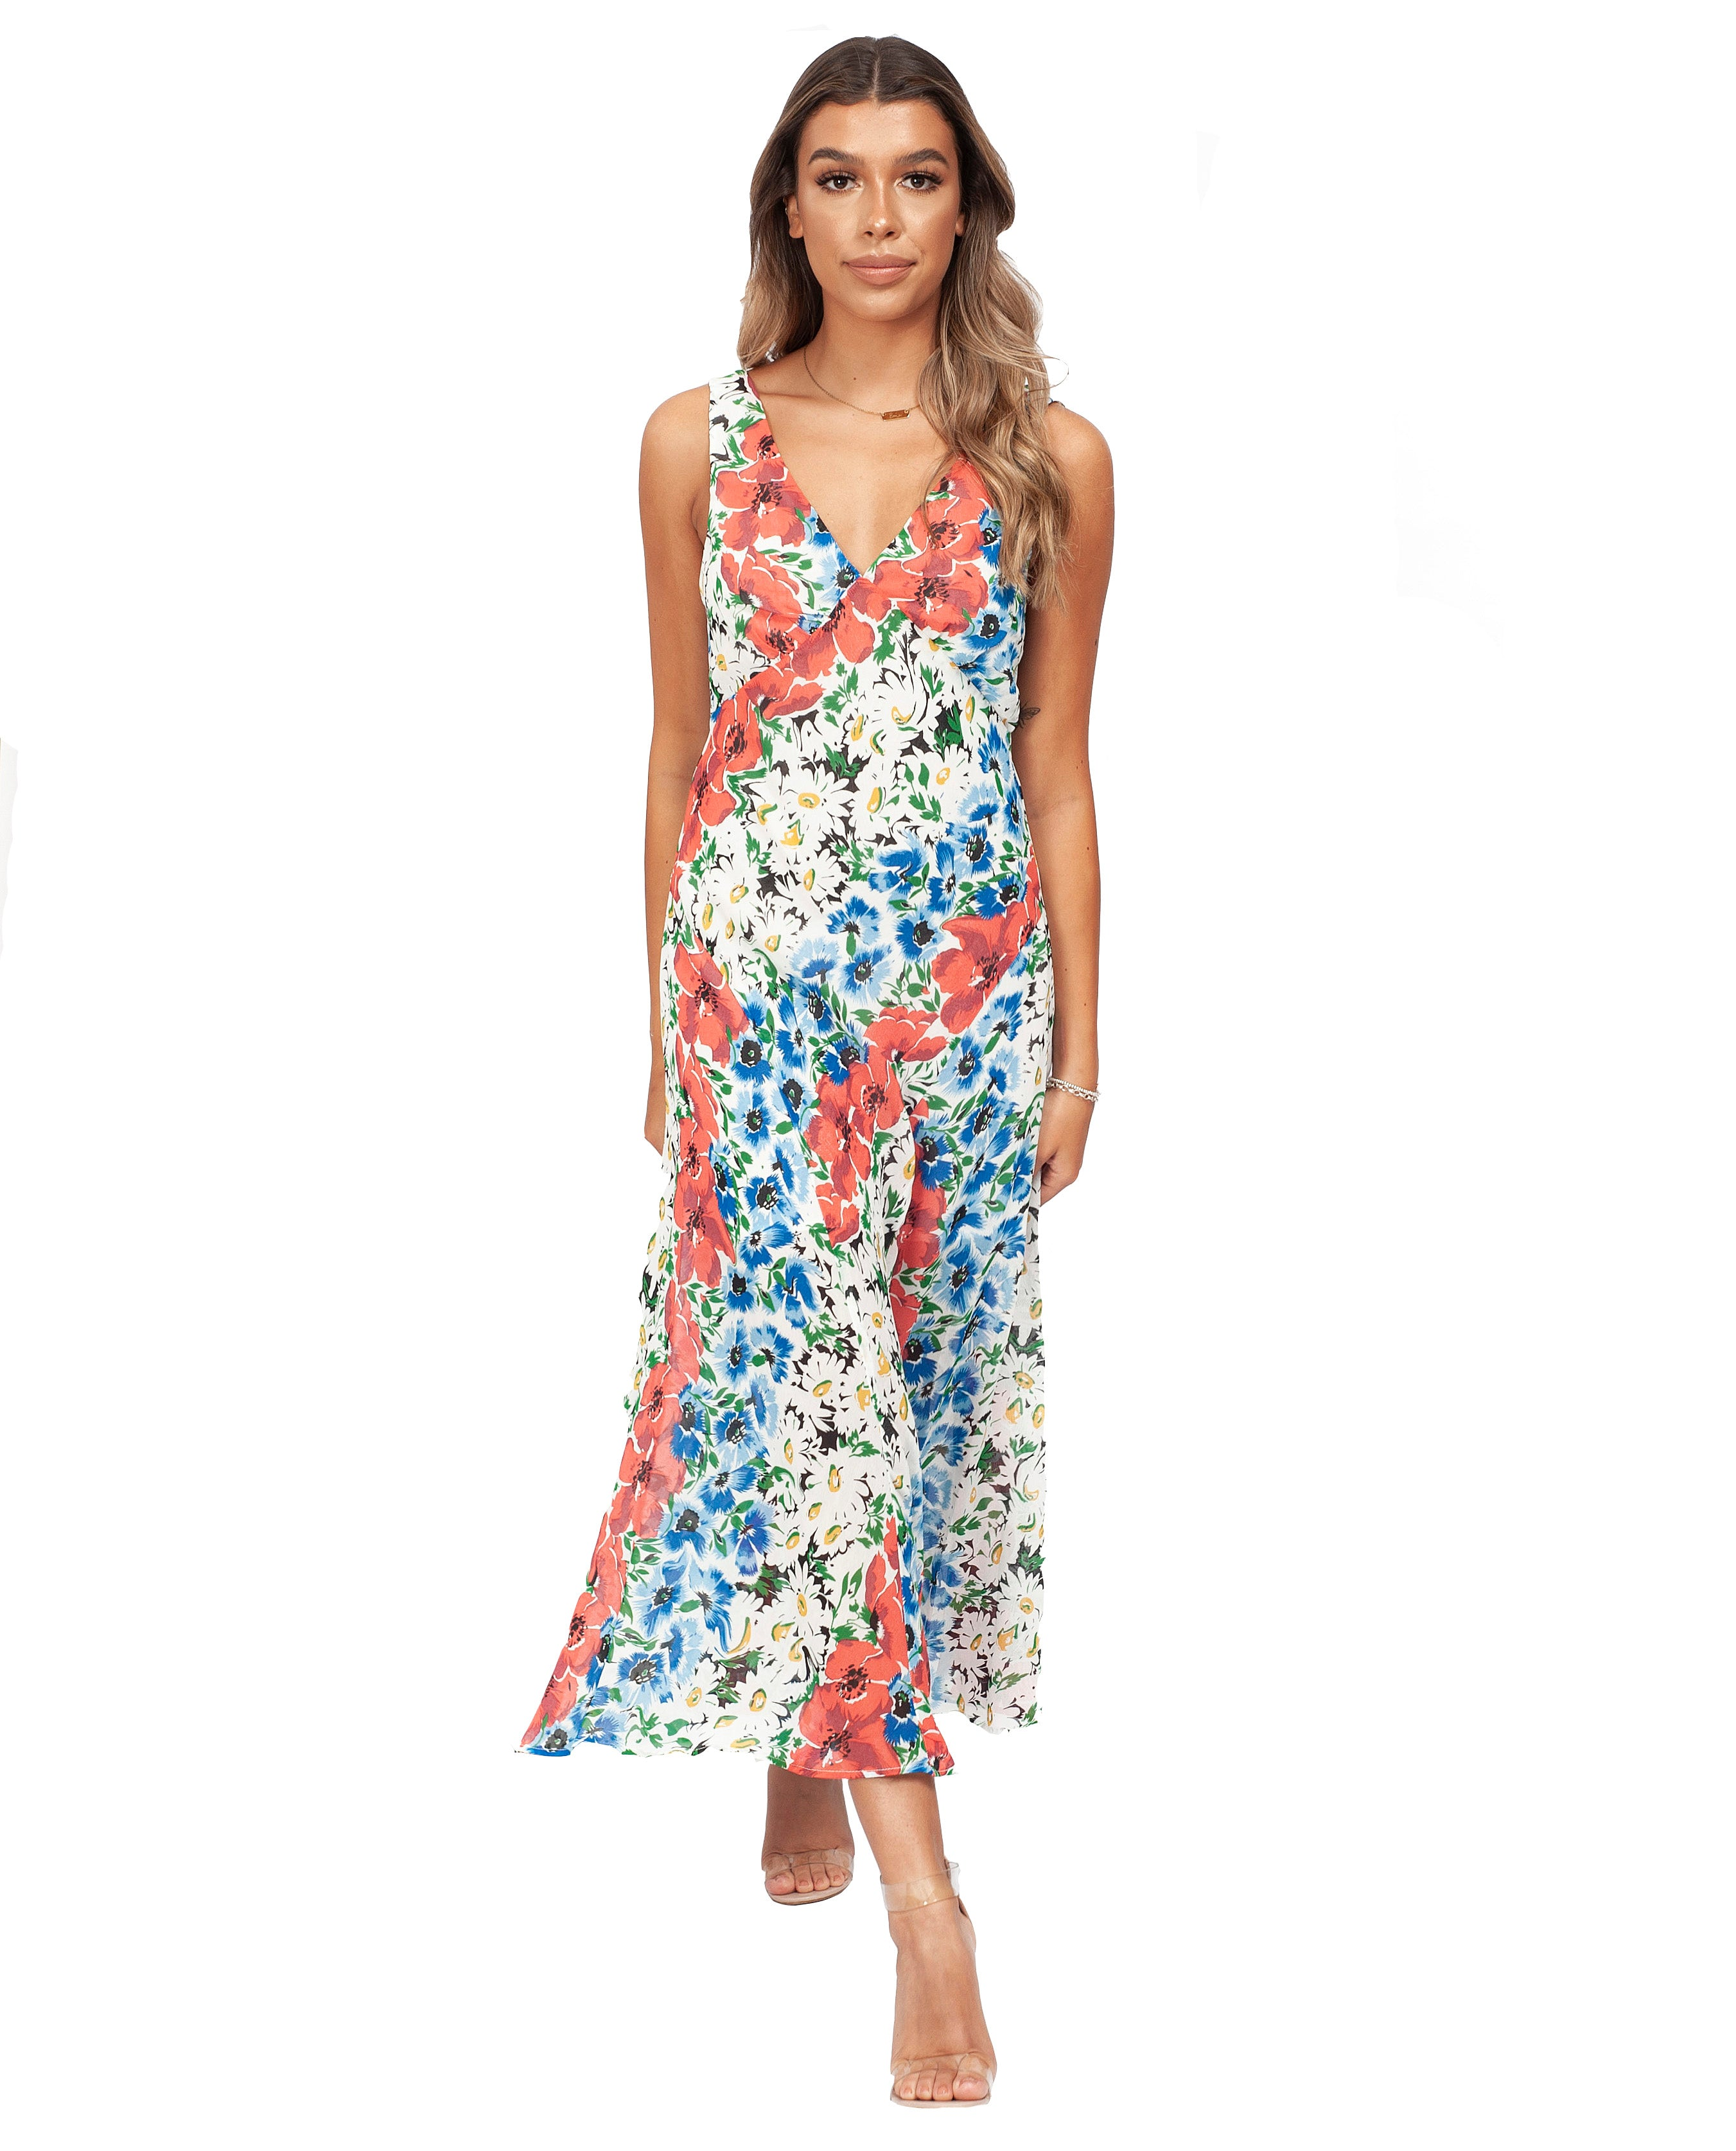 TOPSHOP SUMMER FLORAL MIDI DRESS